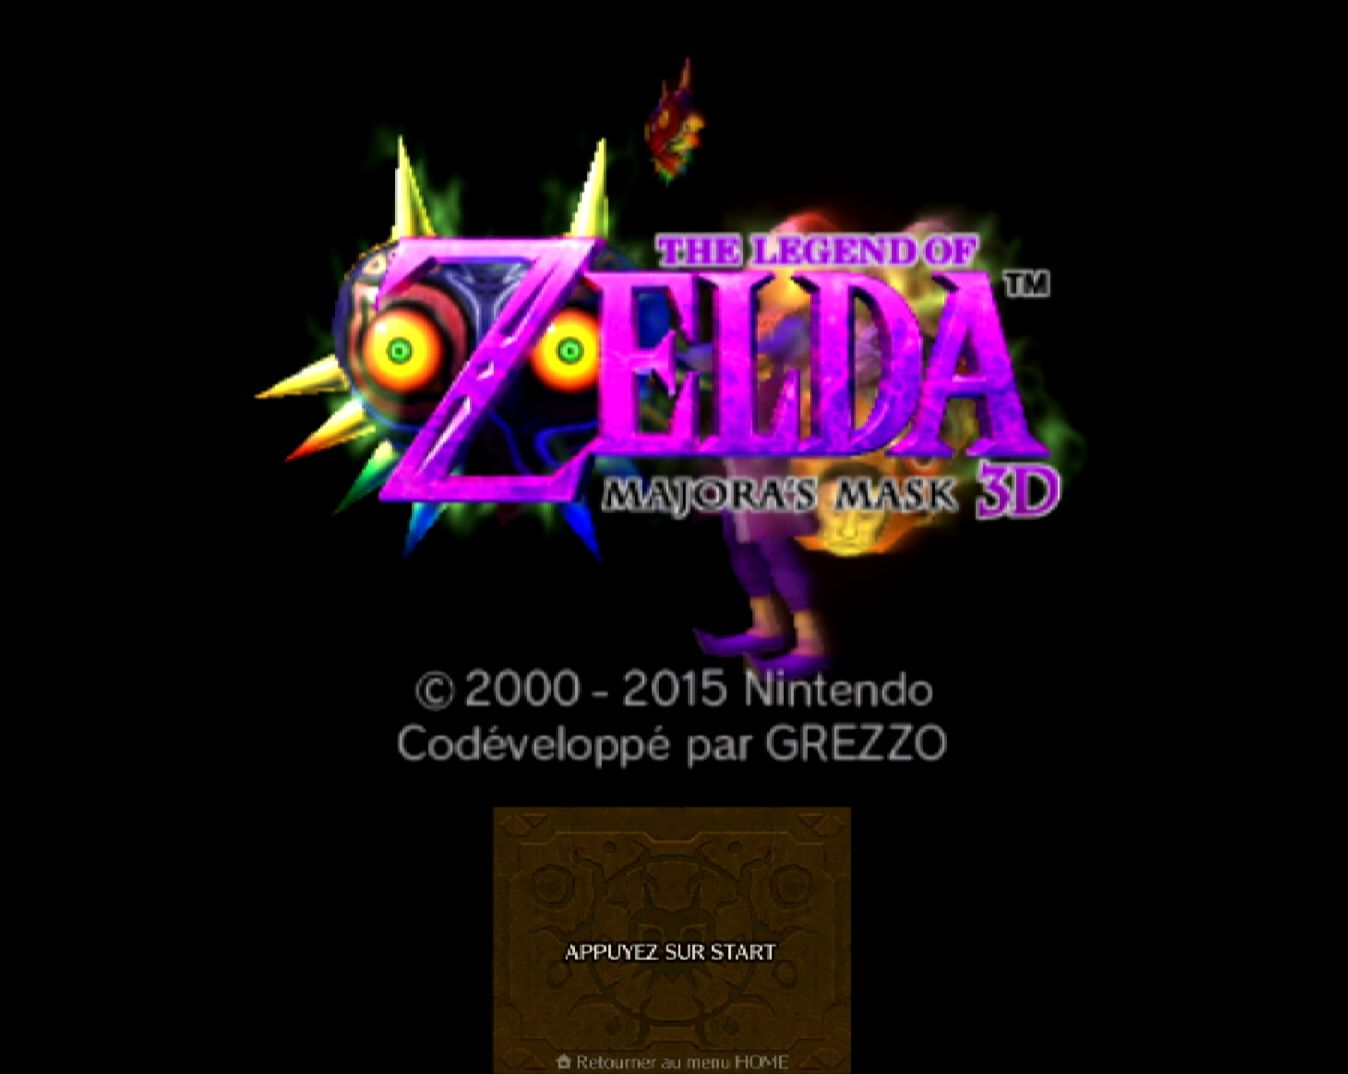 The Legend Of Zelda : Majora's Mask 3D Special Edition in-game